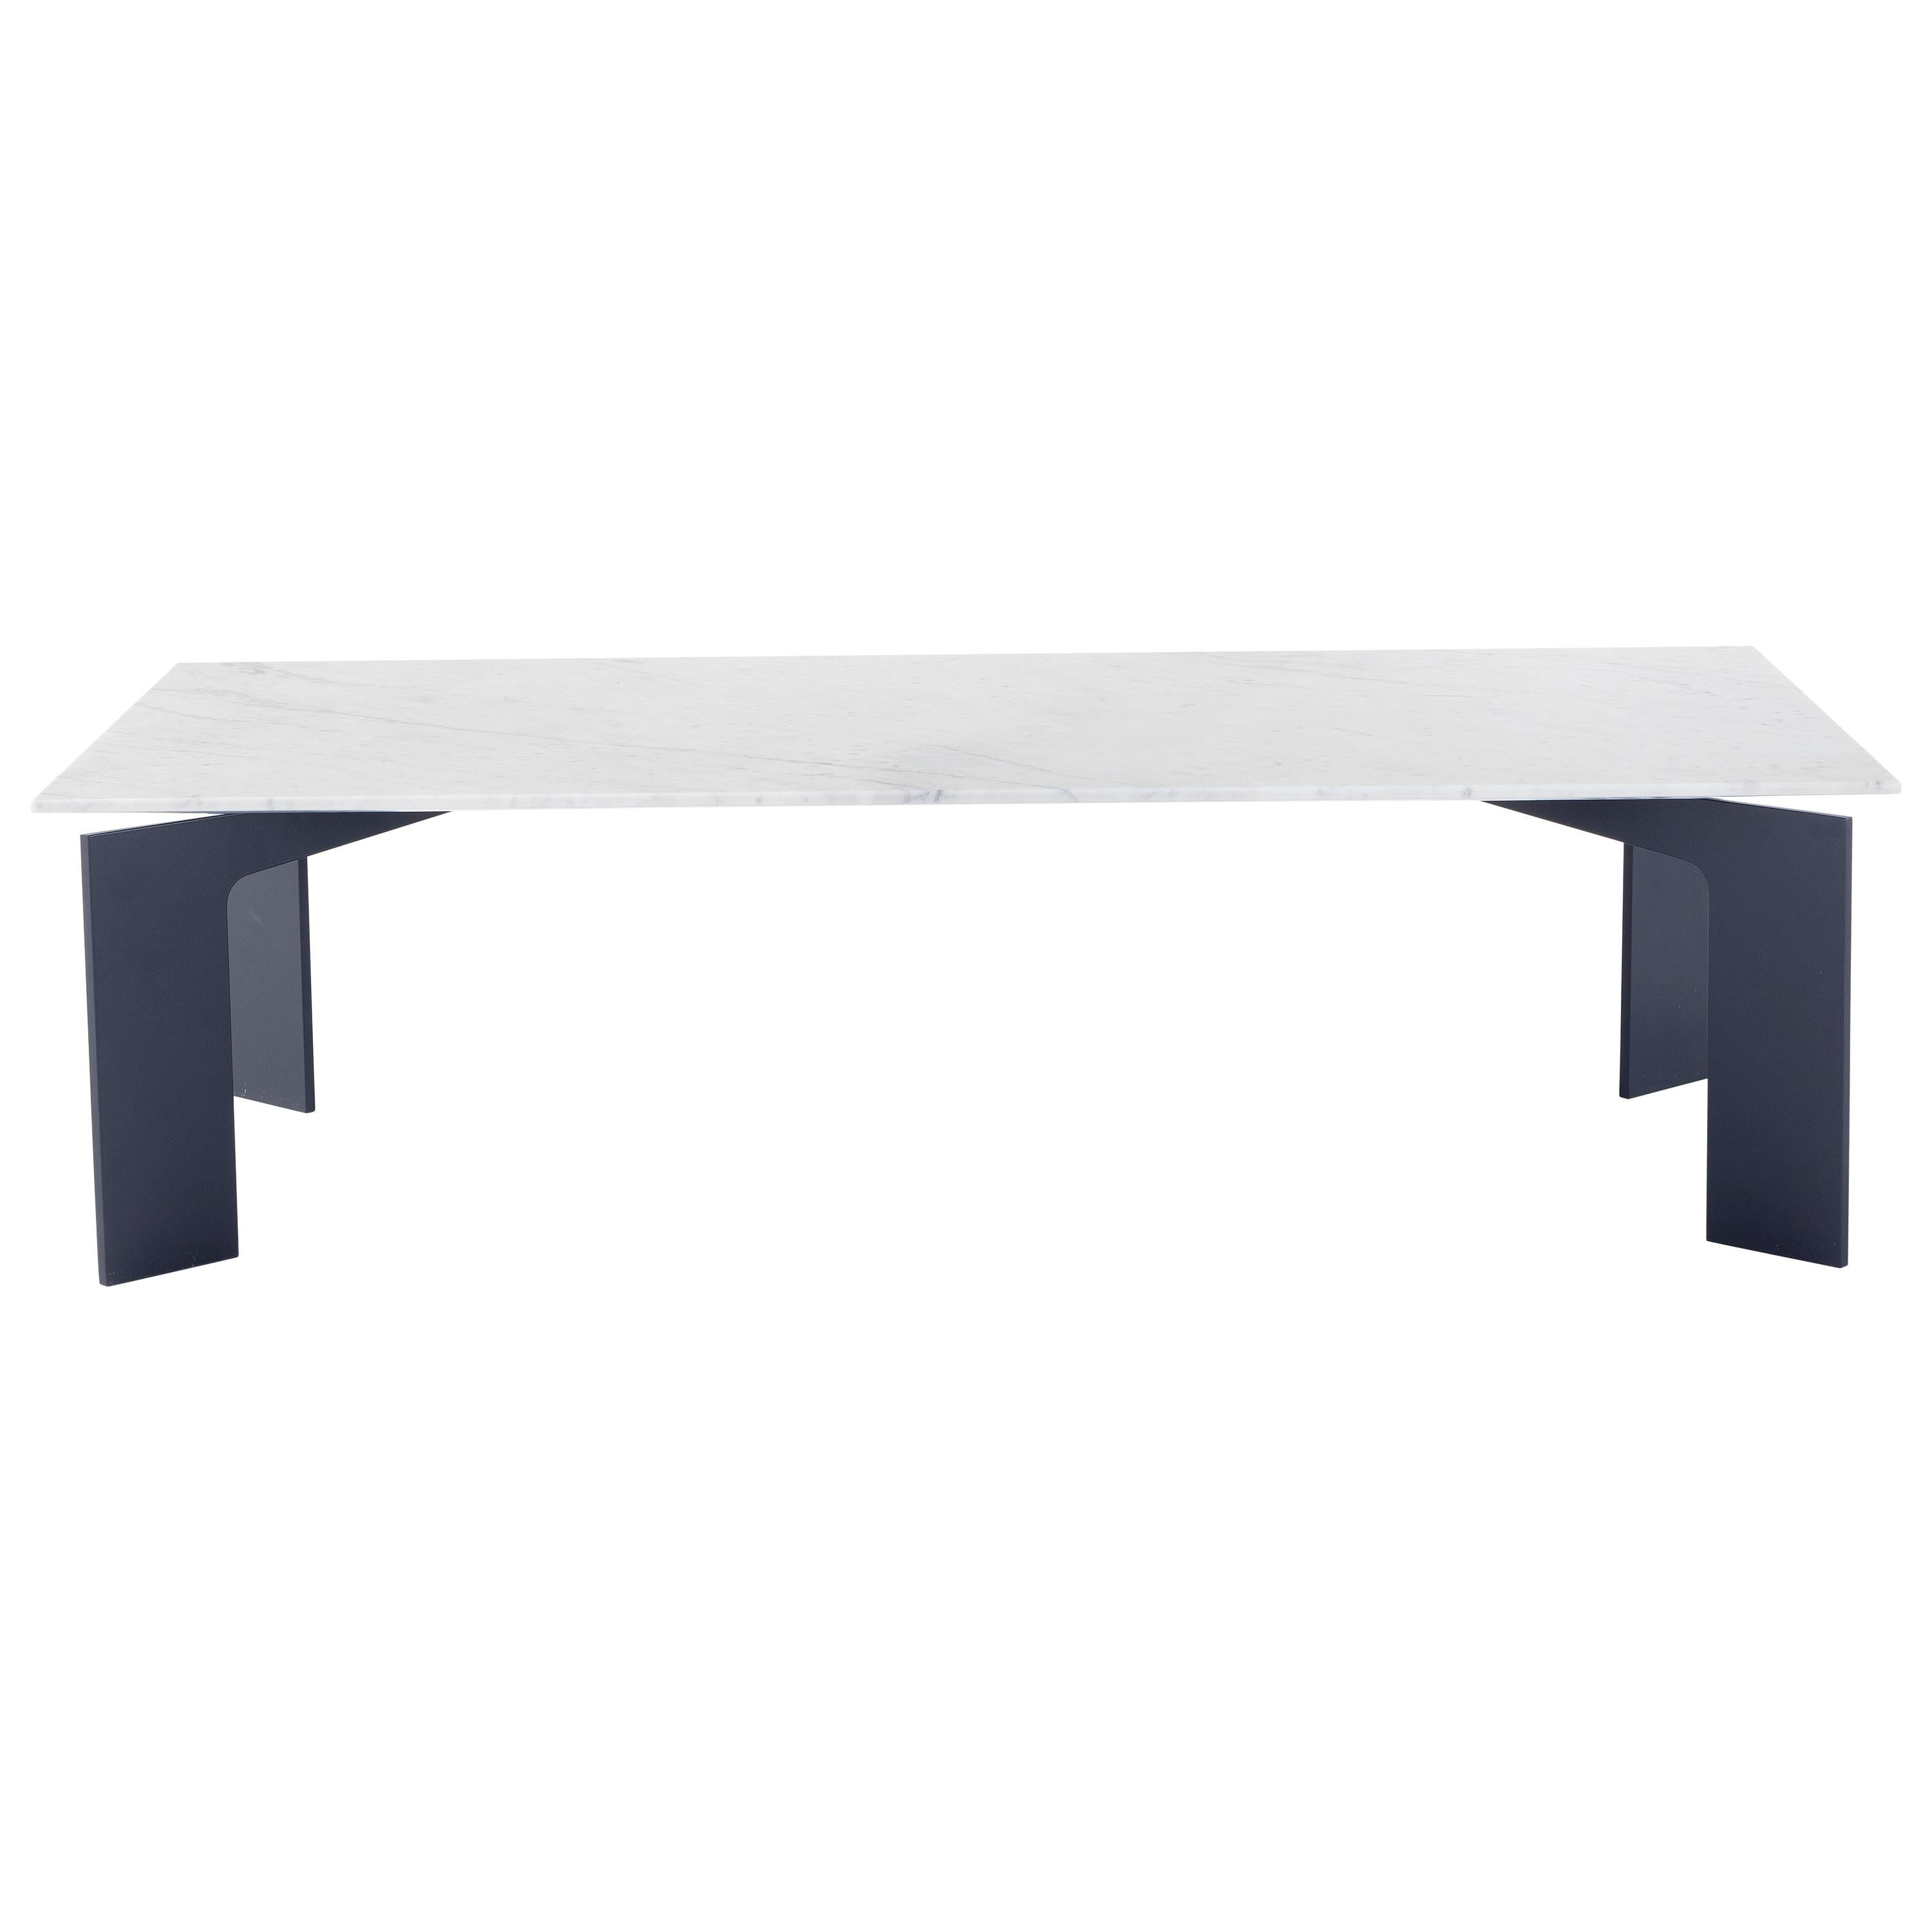 Amura 'Range' Coffee Table in Carrara Marble and Metal by Marconato & Zappa